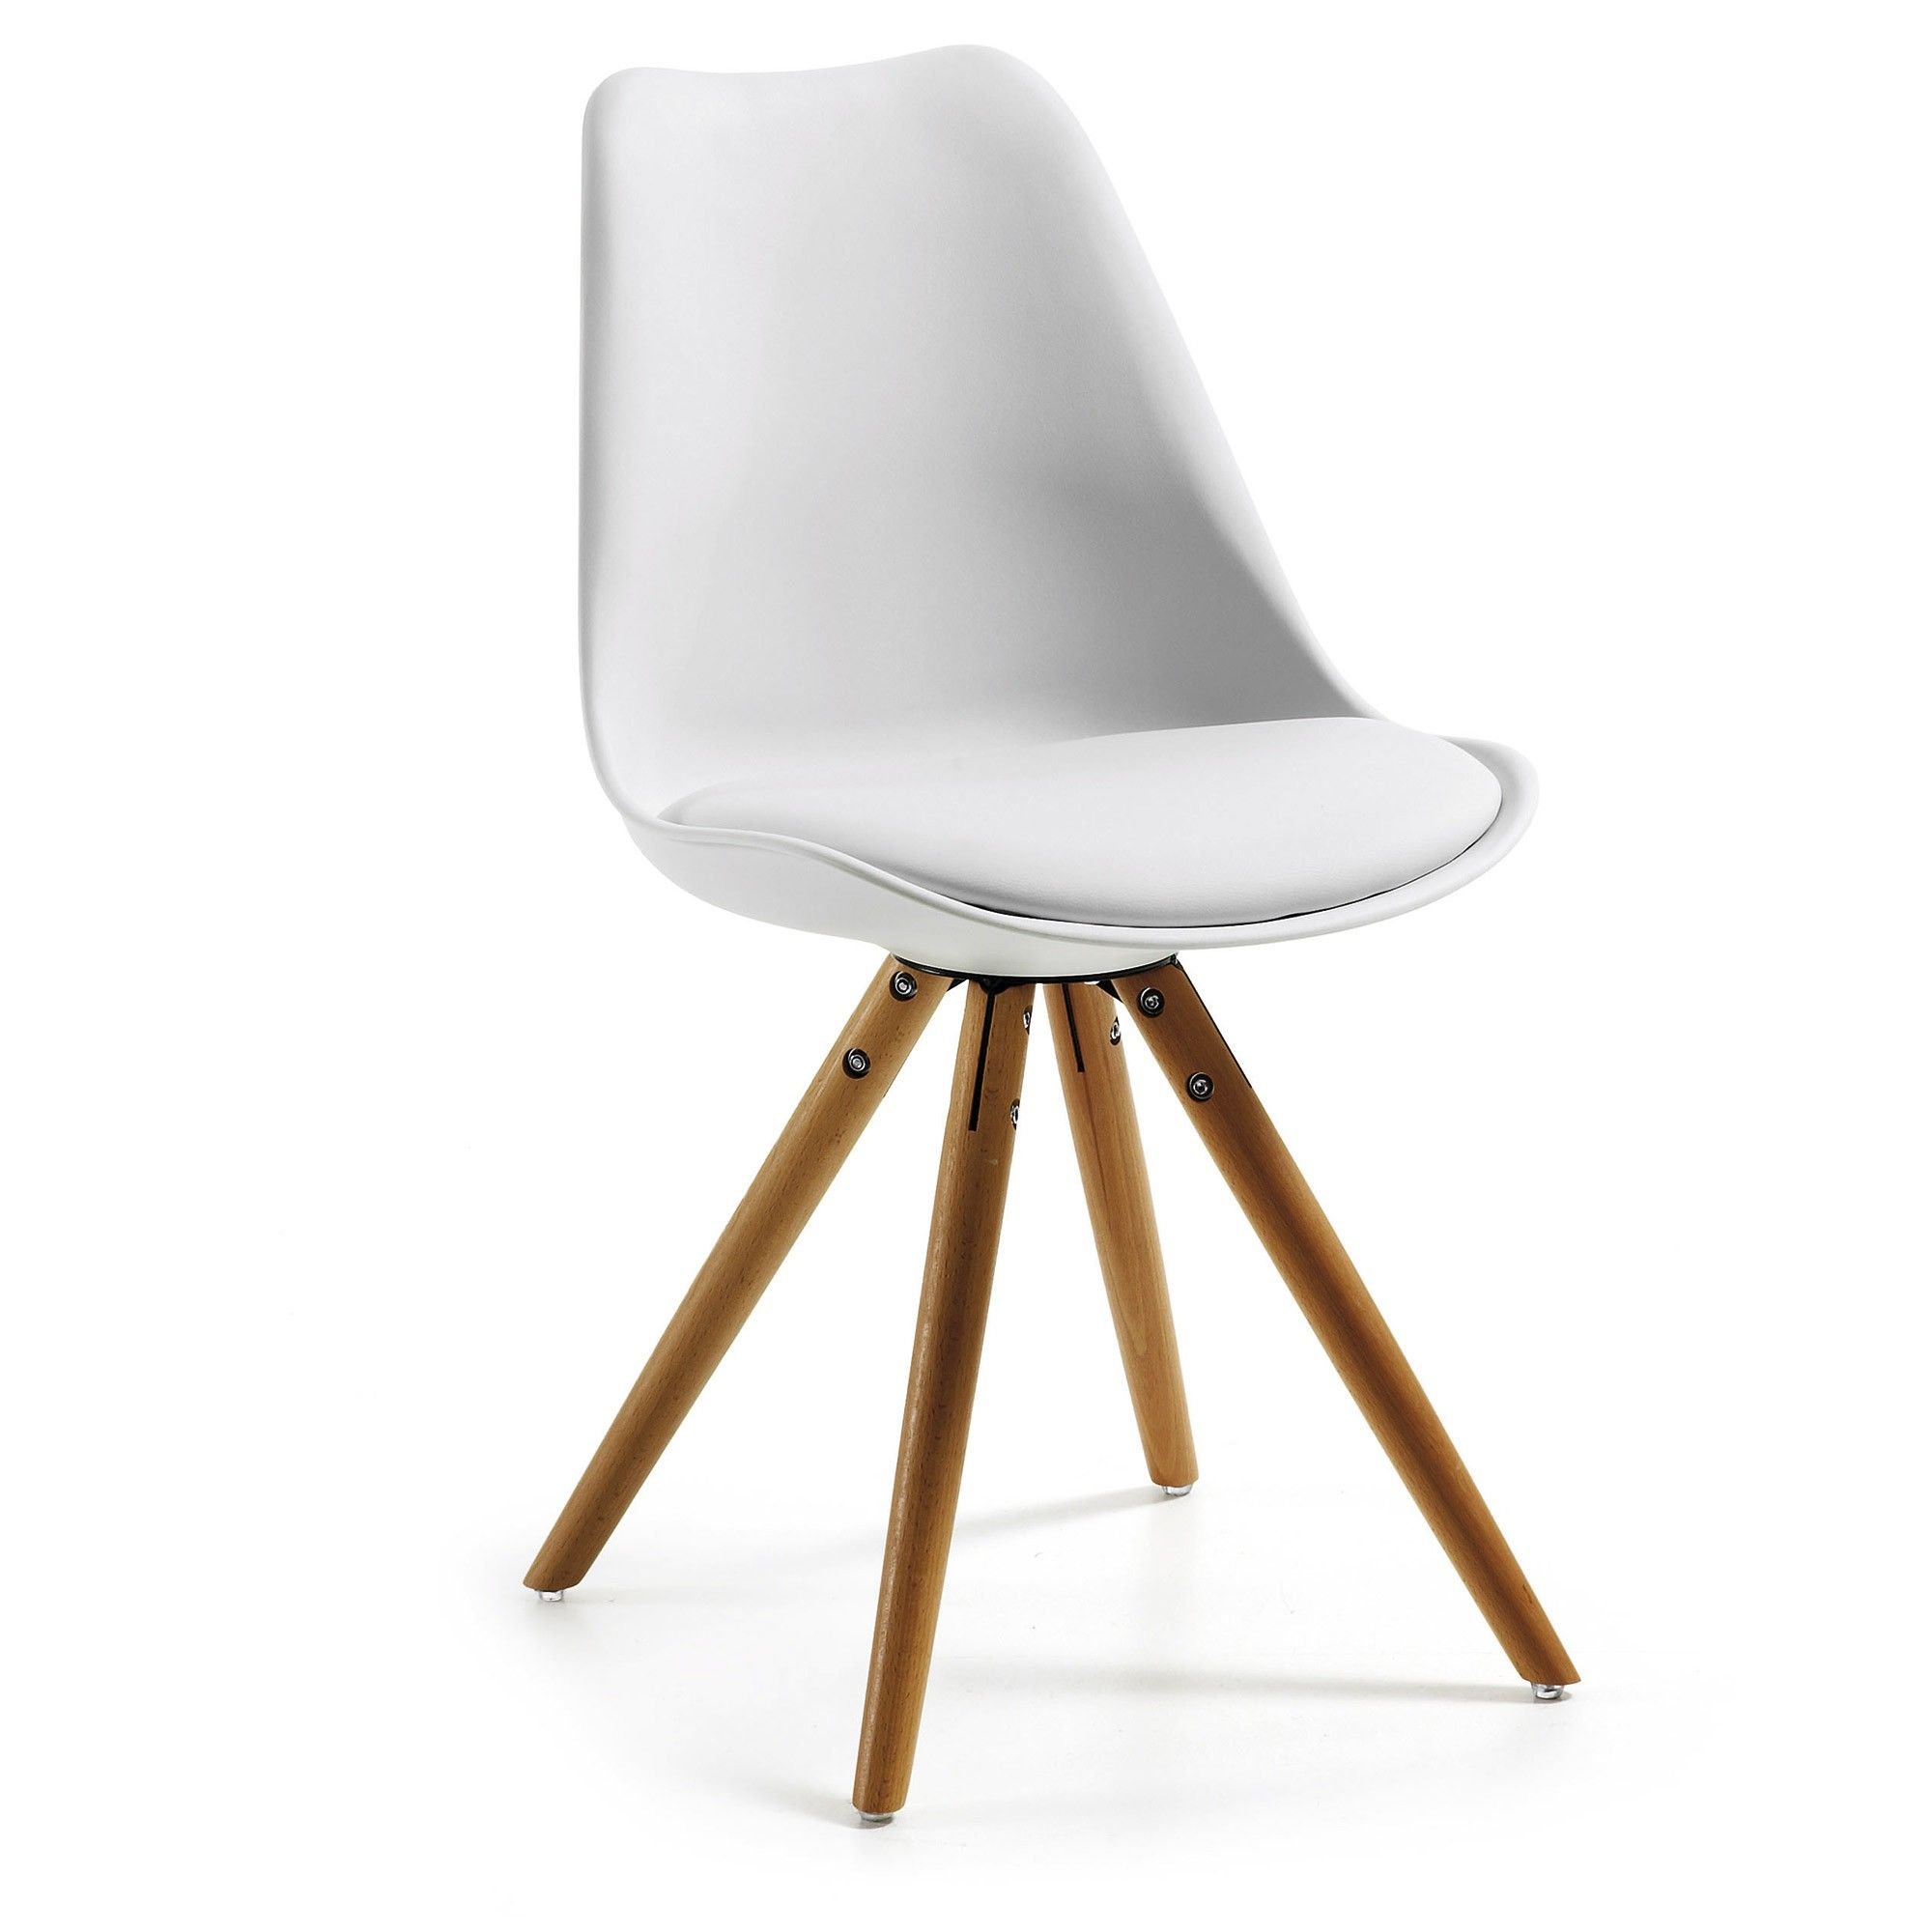 Chaise Ralf blanc et naturel   Kave Home®   Chaise, Chaises